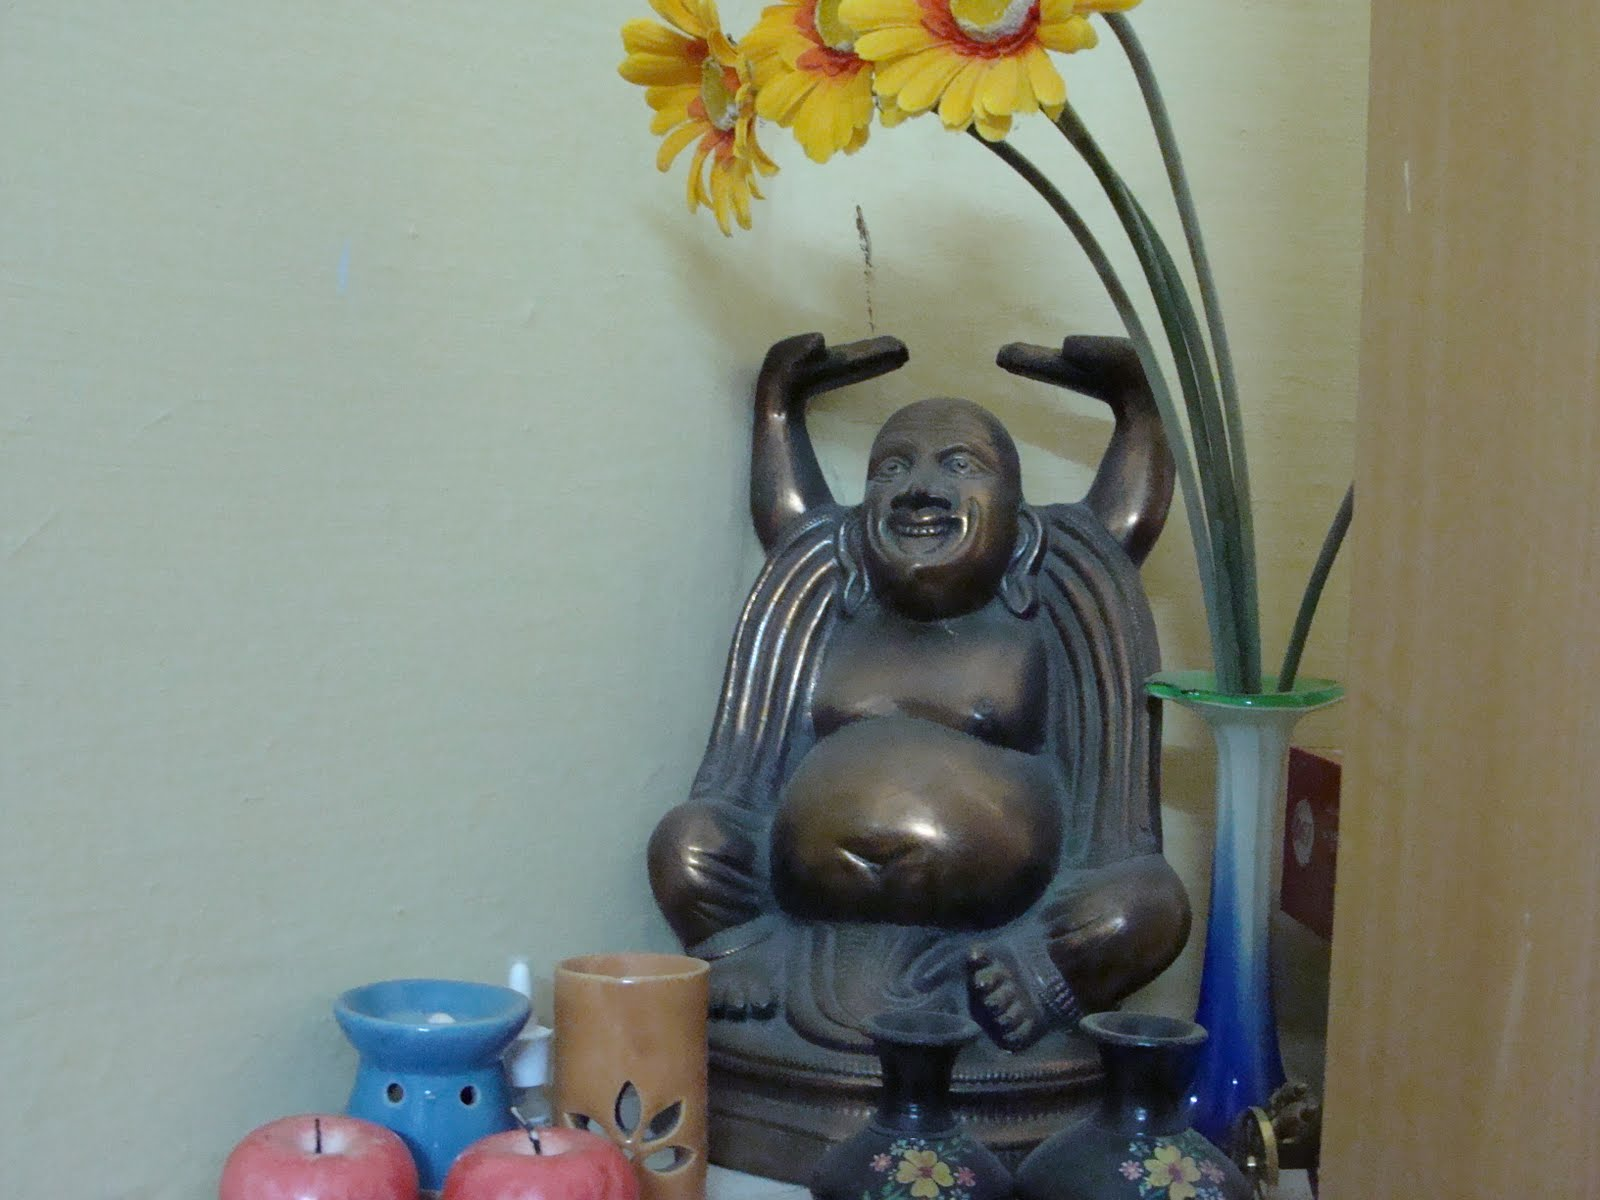 Free Laughing Buddha Wallpapers